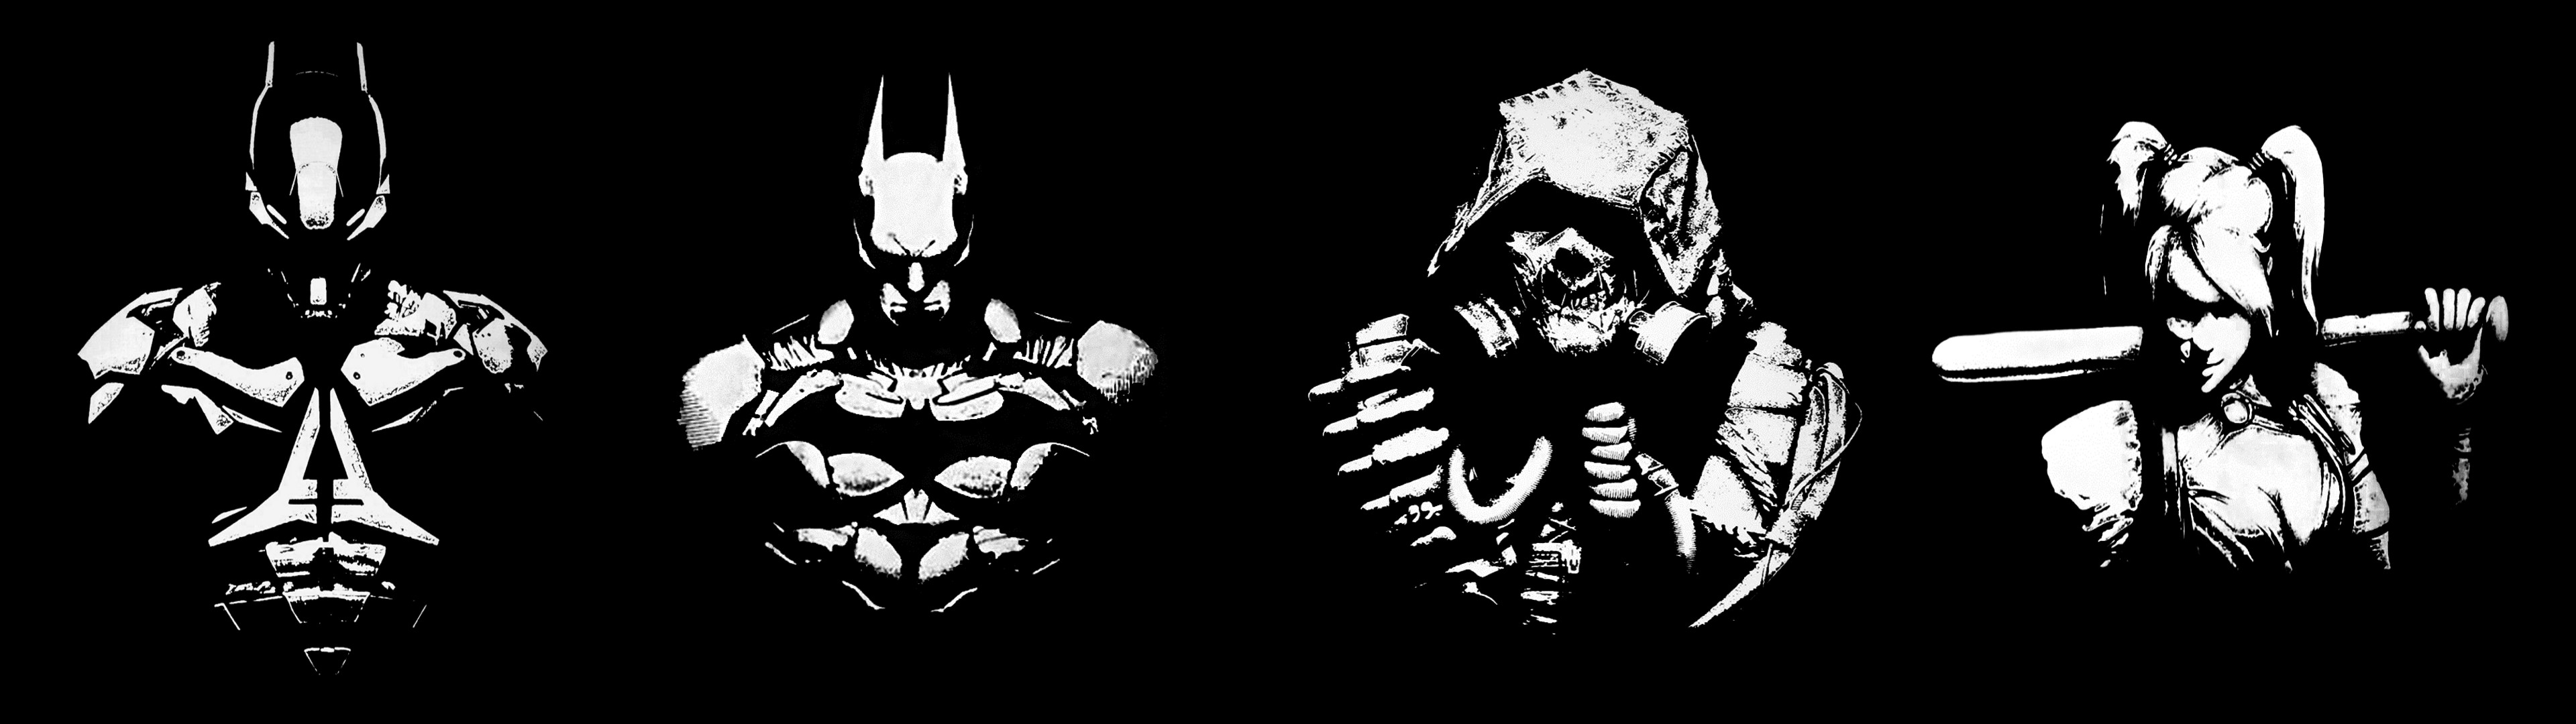 3840×1080] I edited four Batman Arkham wallpapers into one for .